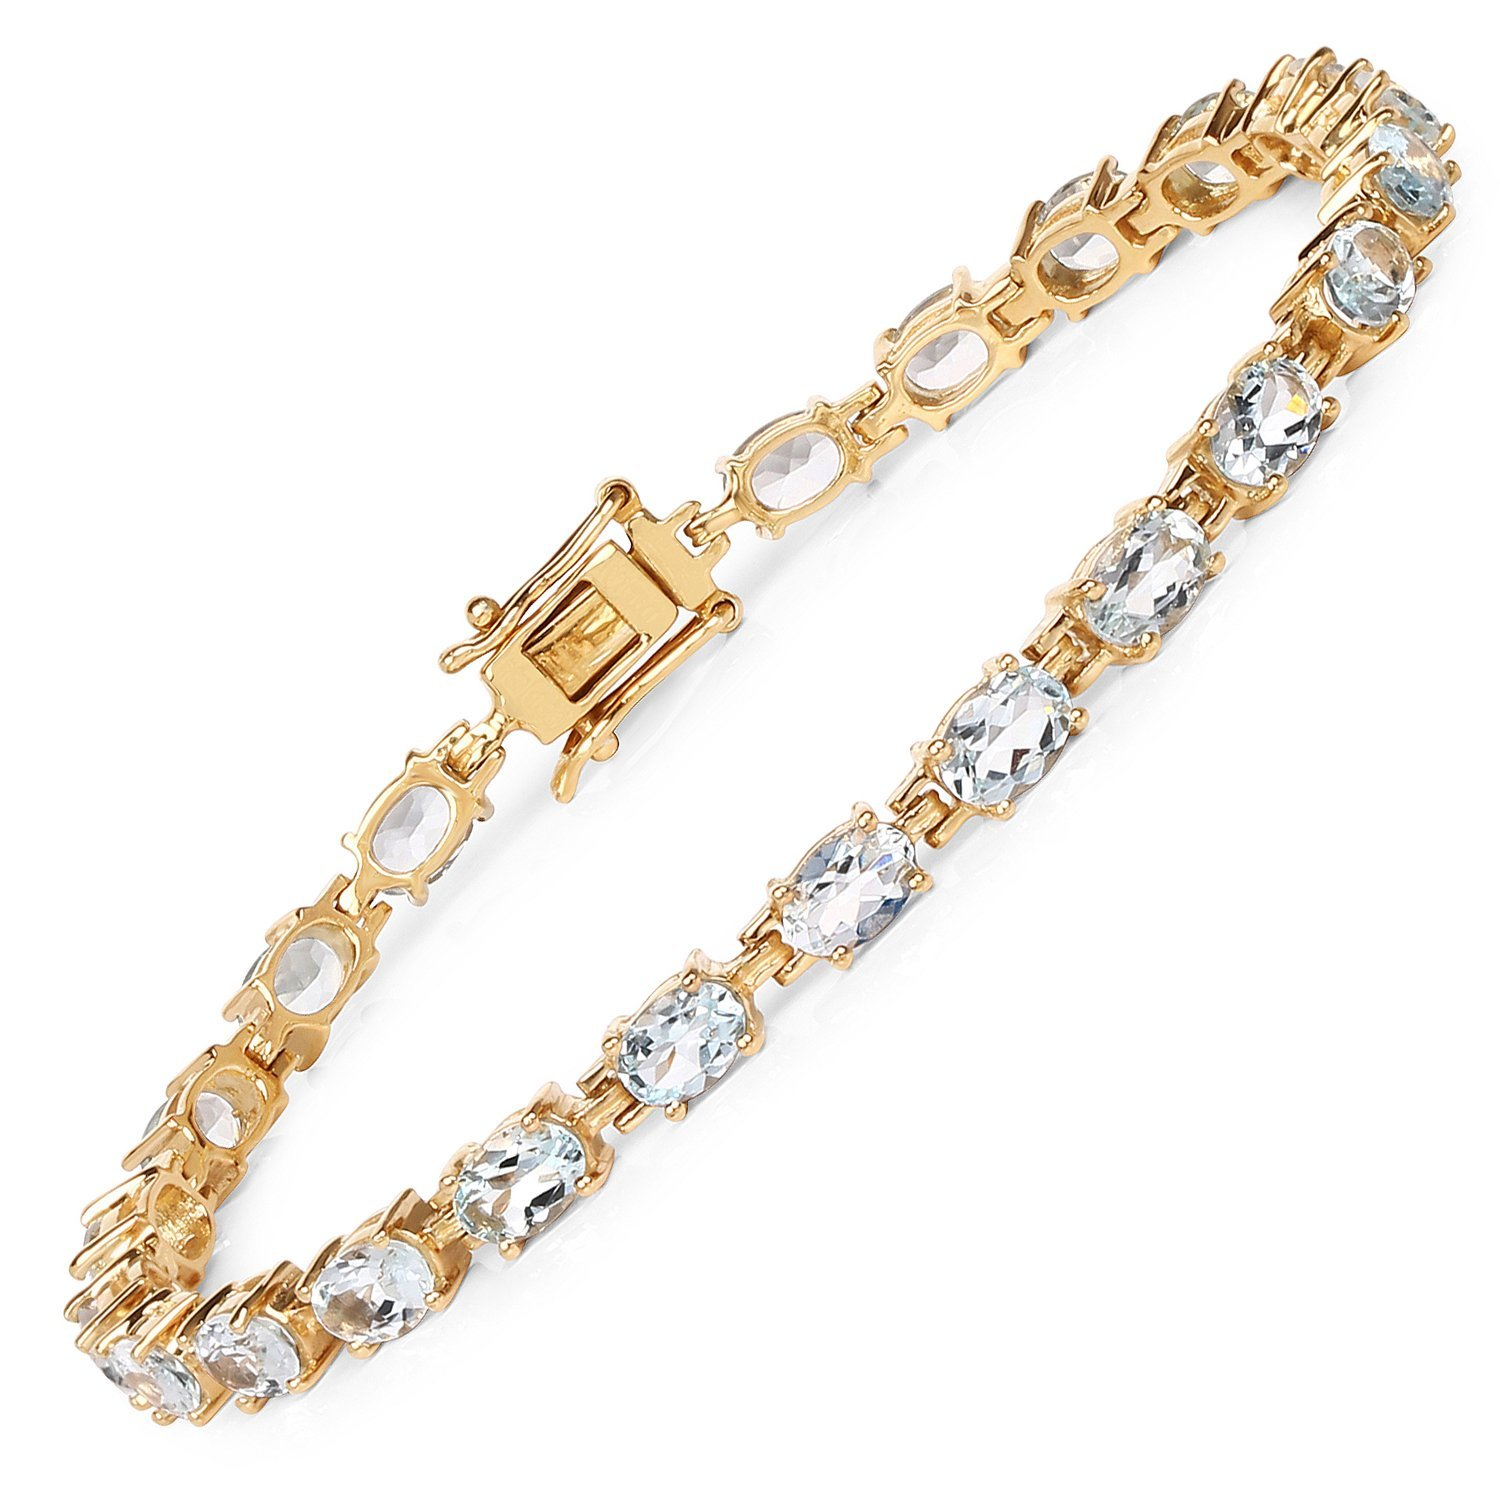 14K Yellow Gold Plated 7.92 Carat Genuine Aquamarine Solid .925 Sterling Silver Tennis Bracelet